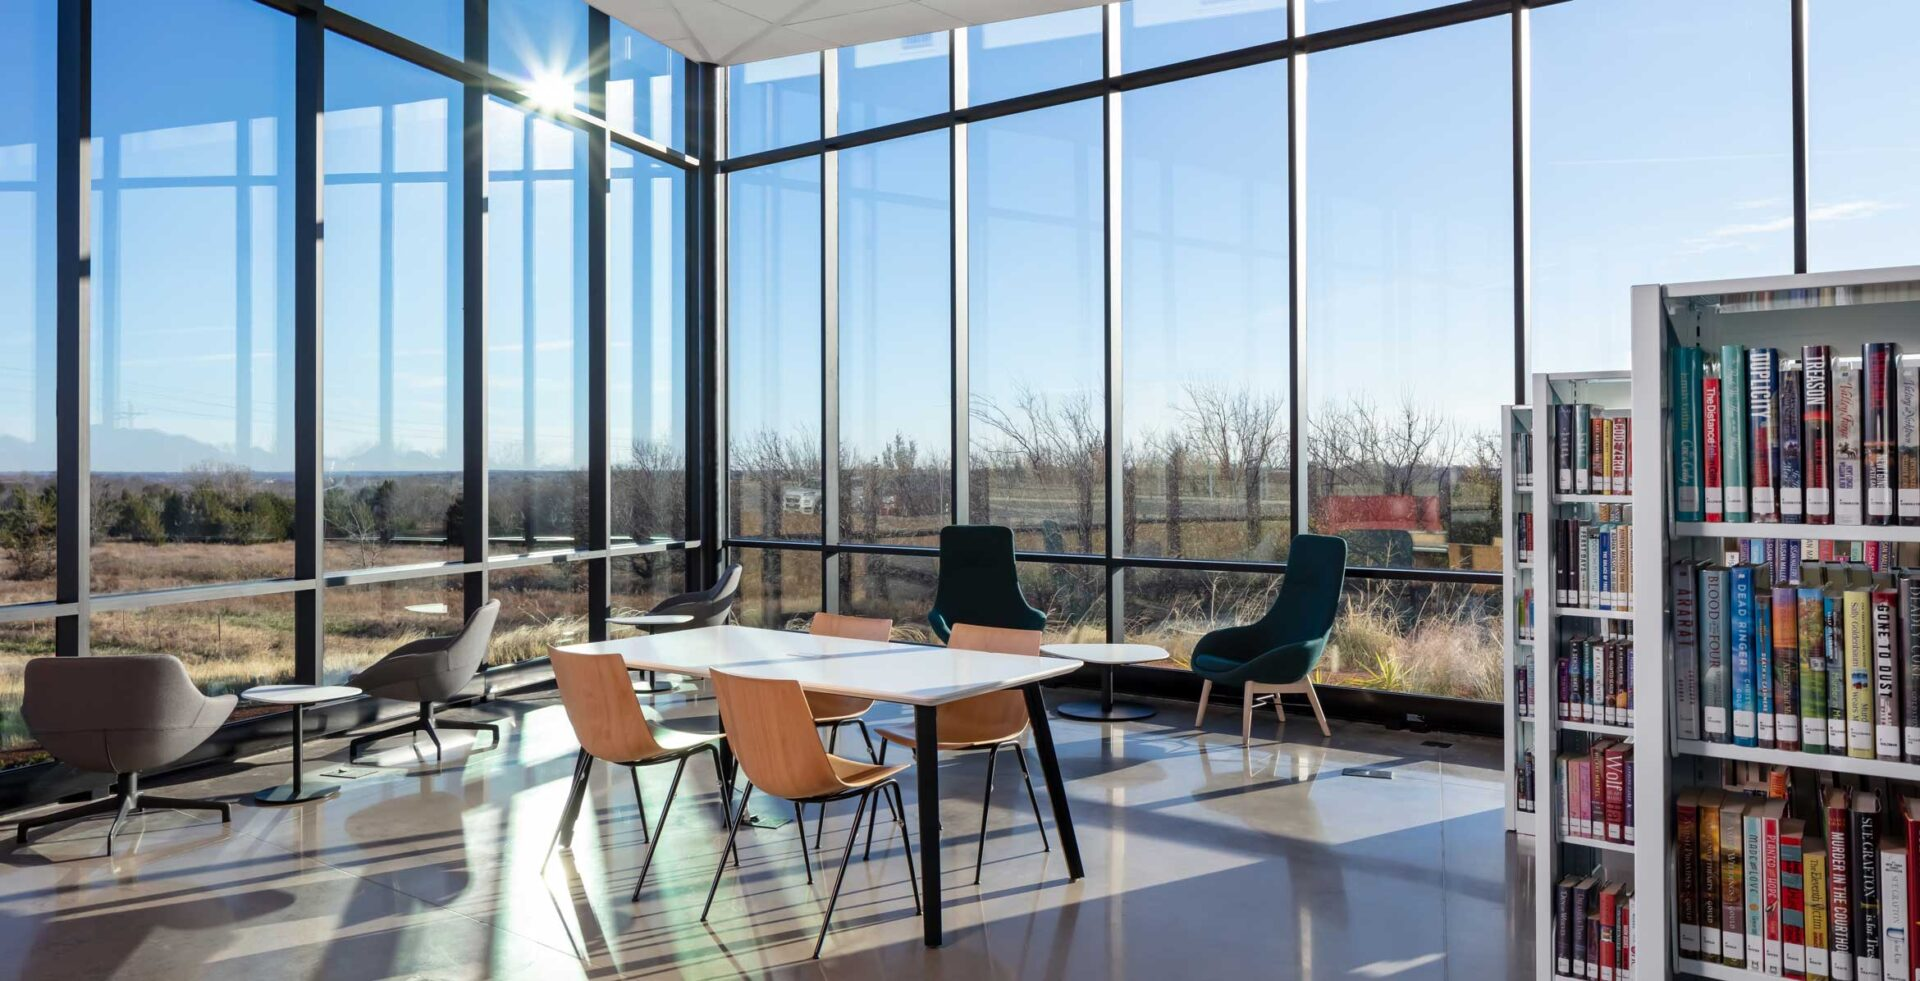 Furniture for Library Space